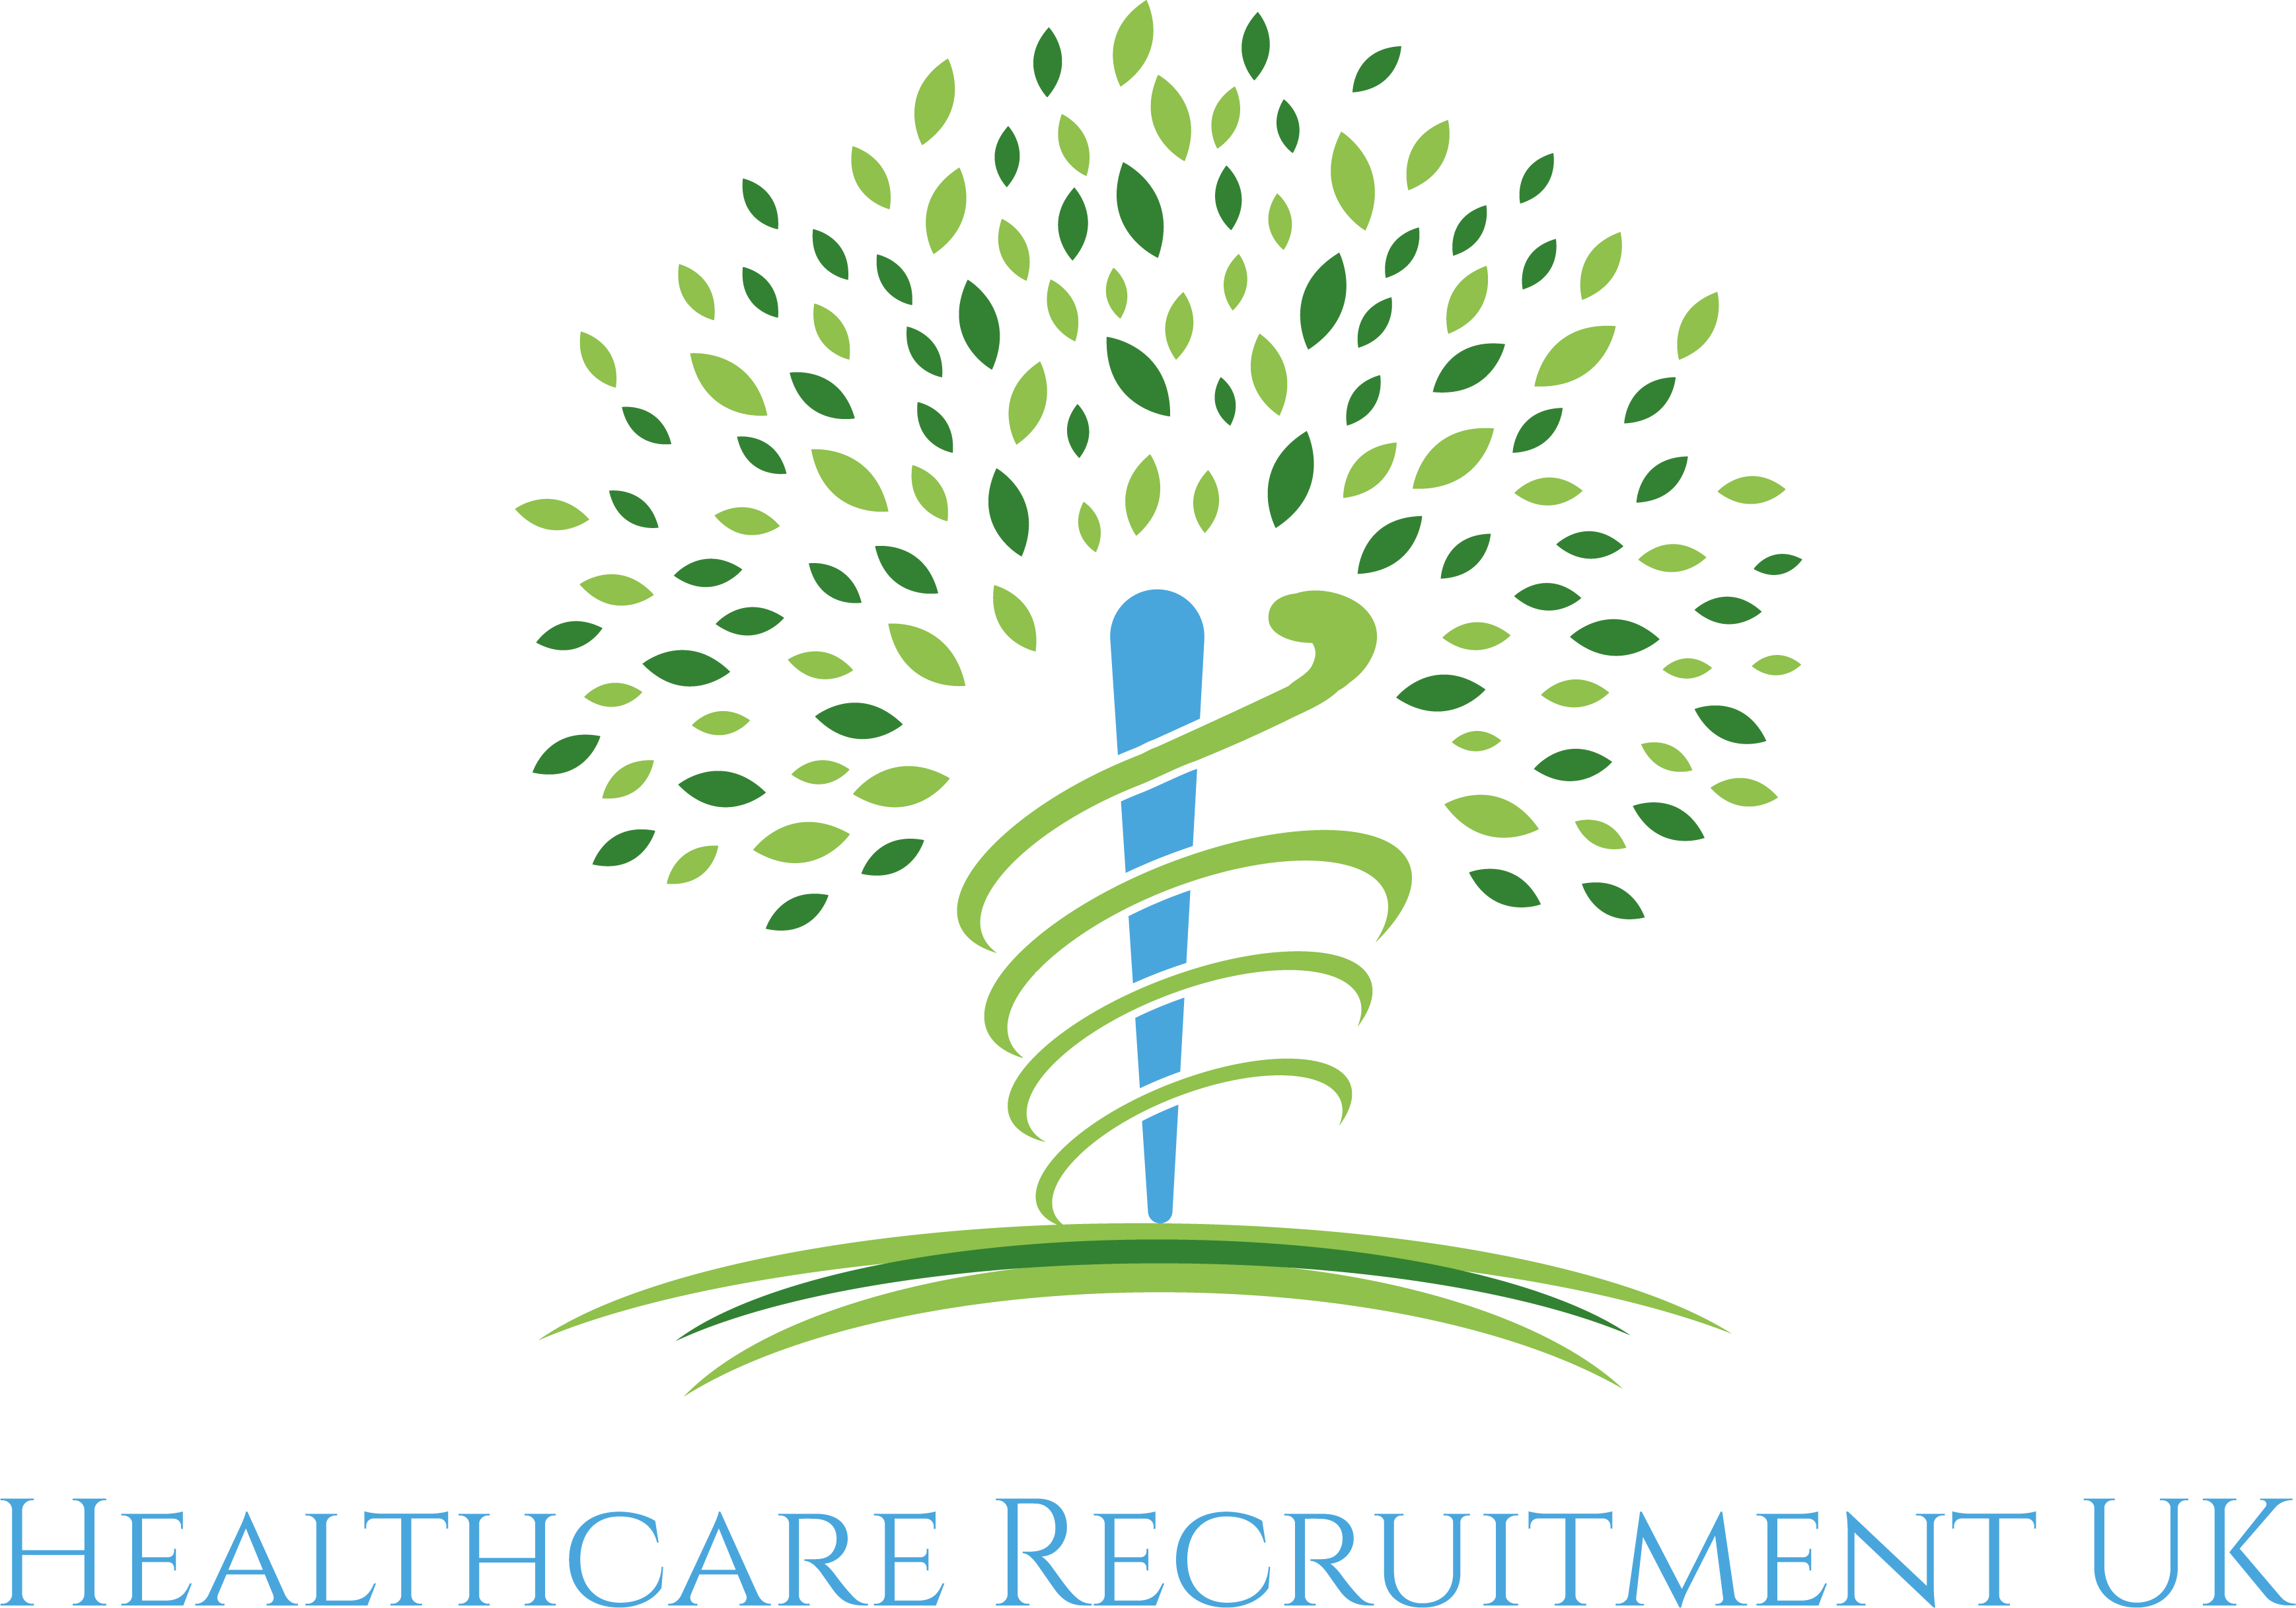 Heathcare Recruitment UK